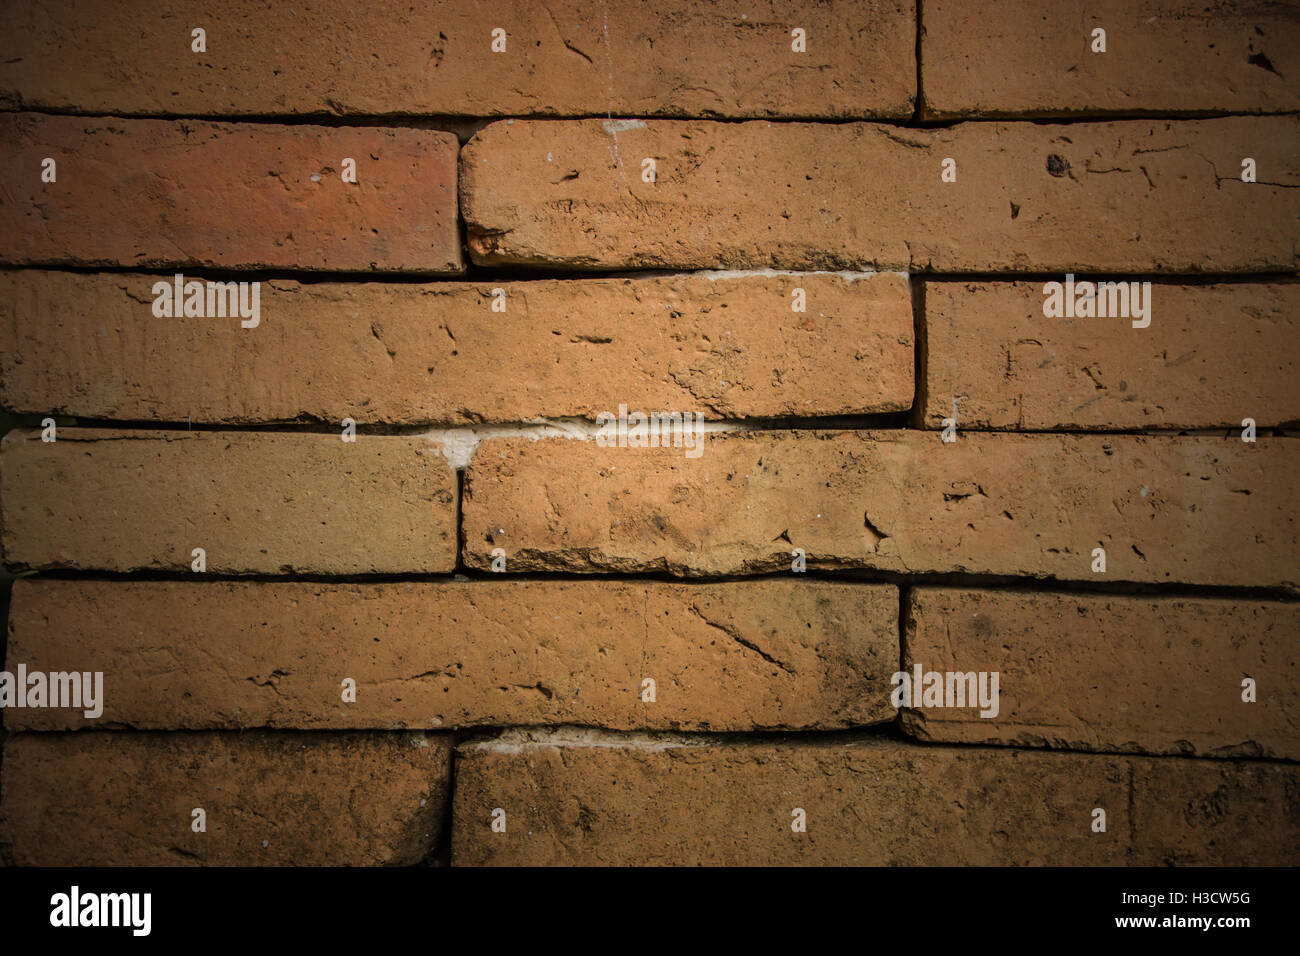 Old brick wall texture to use as background - Stock Image